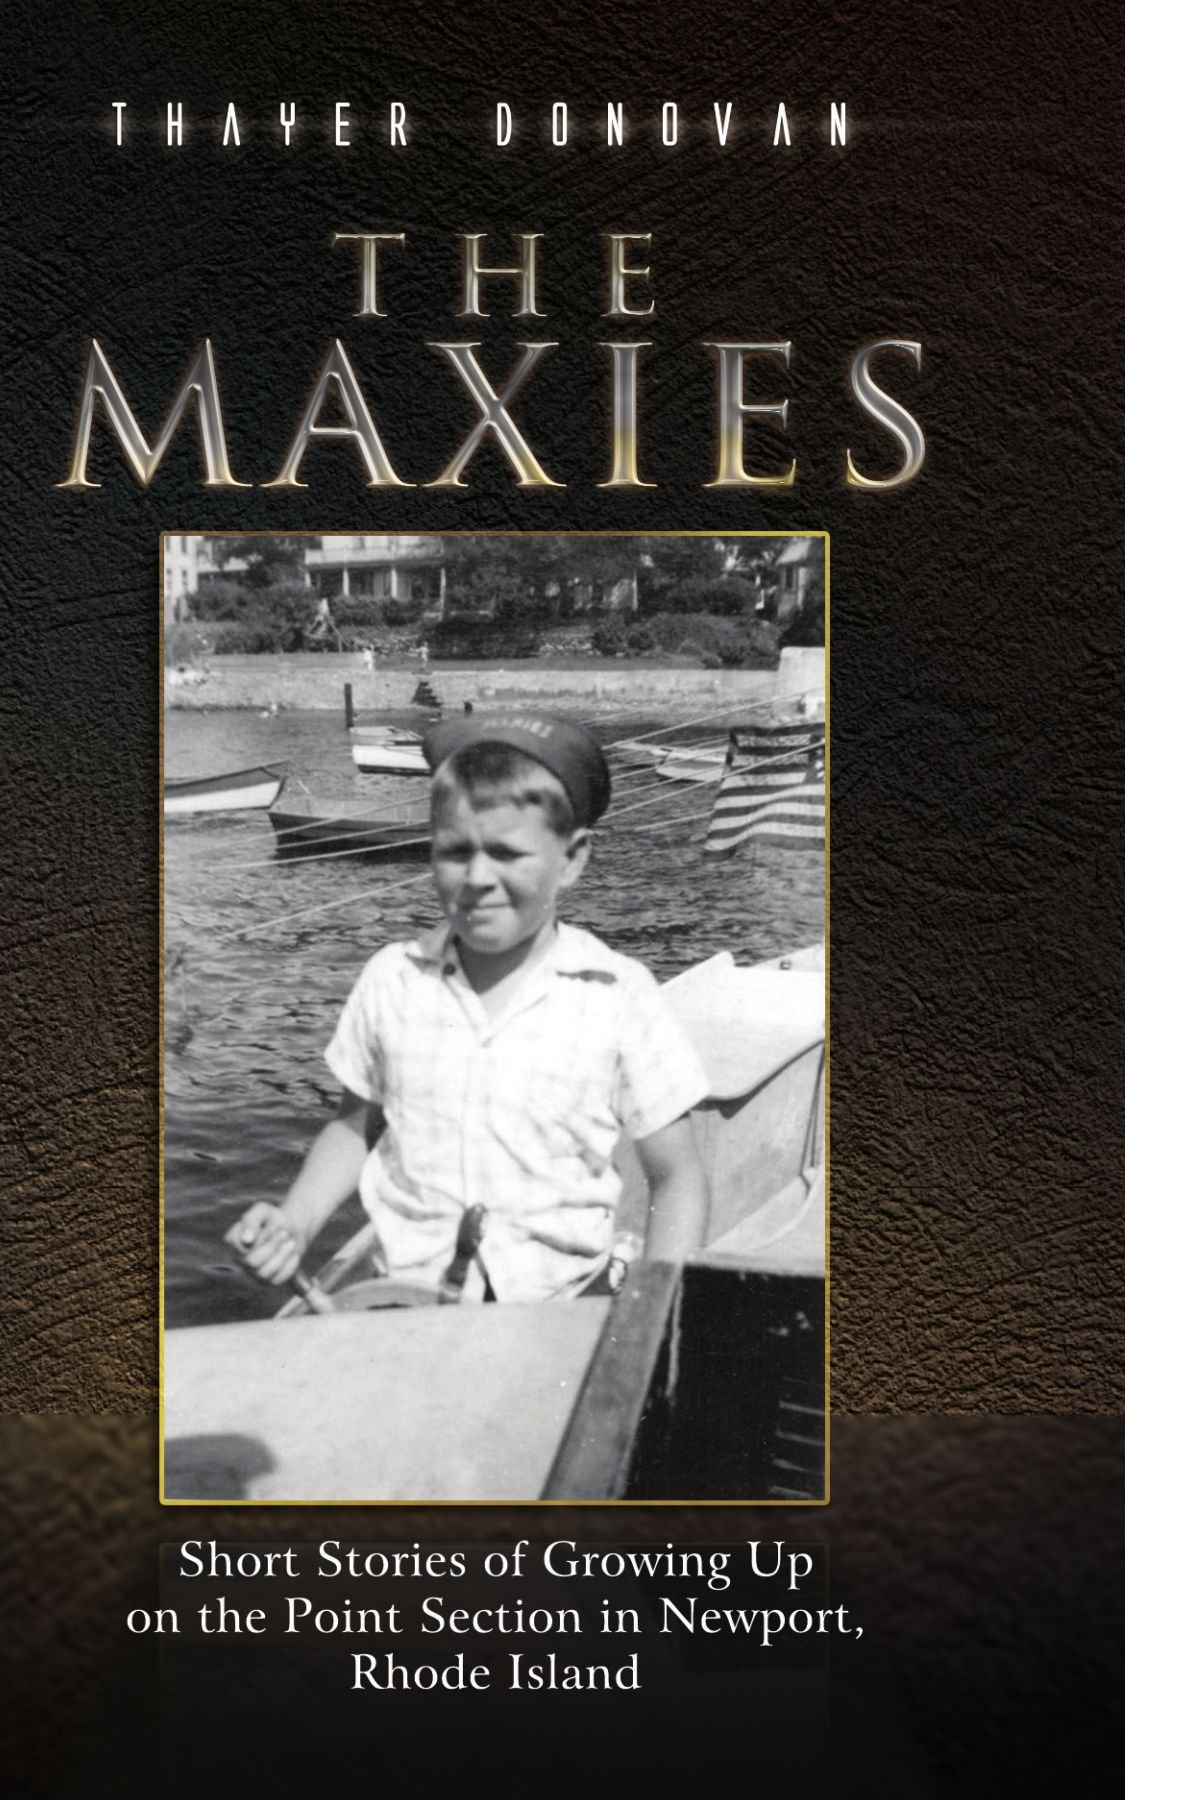 The Maxies: Other Short Stories of Growing Up on the Point Section on Newport, Rhode Island